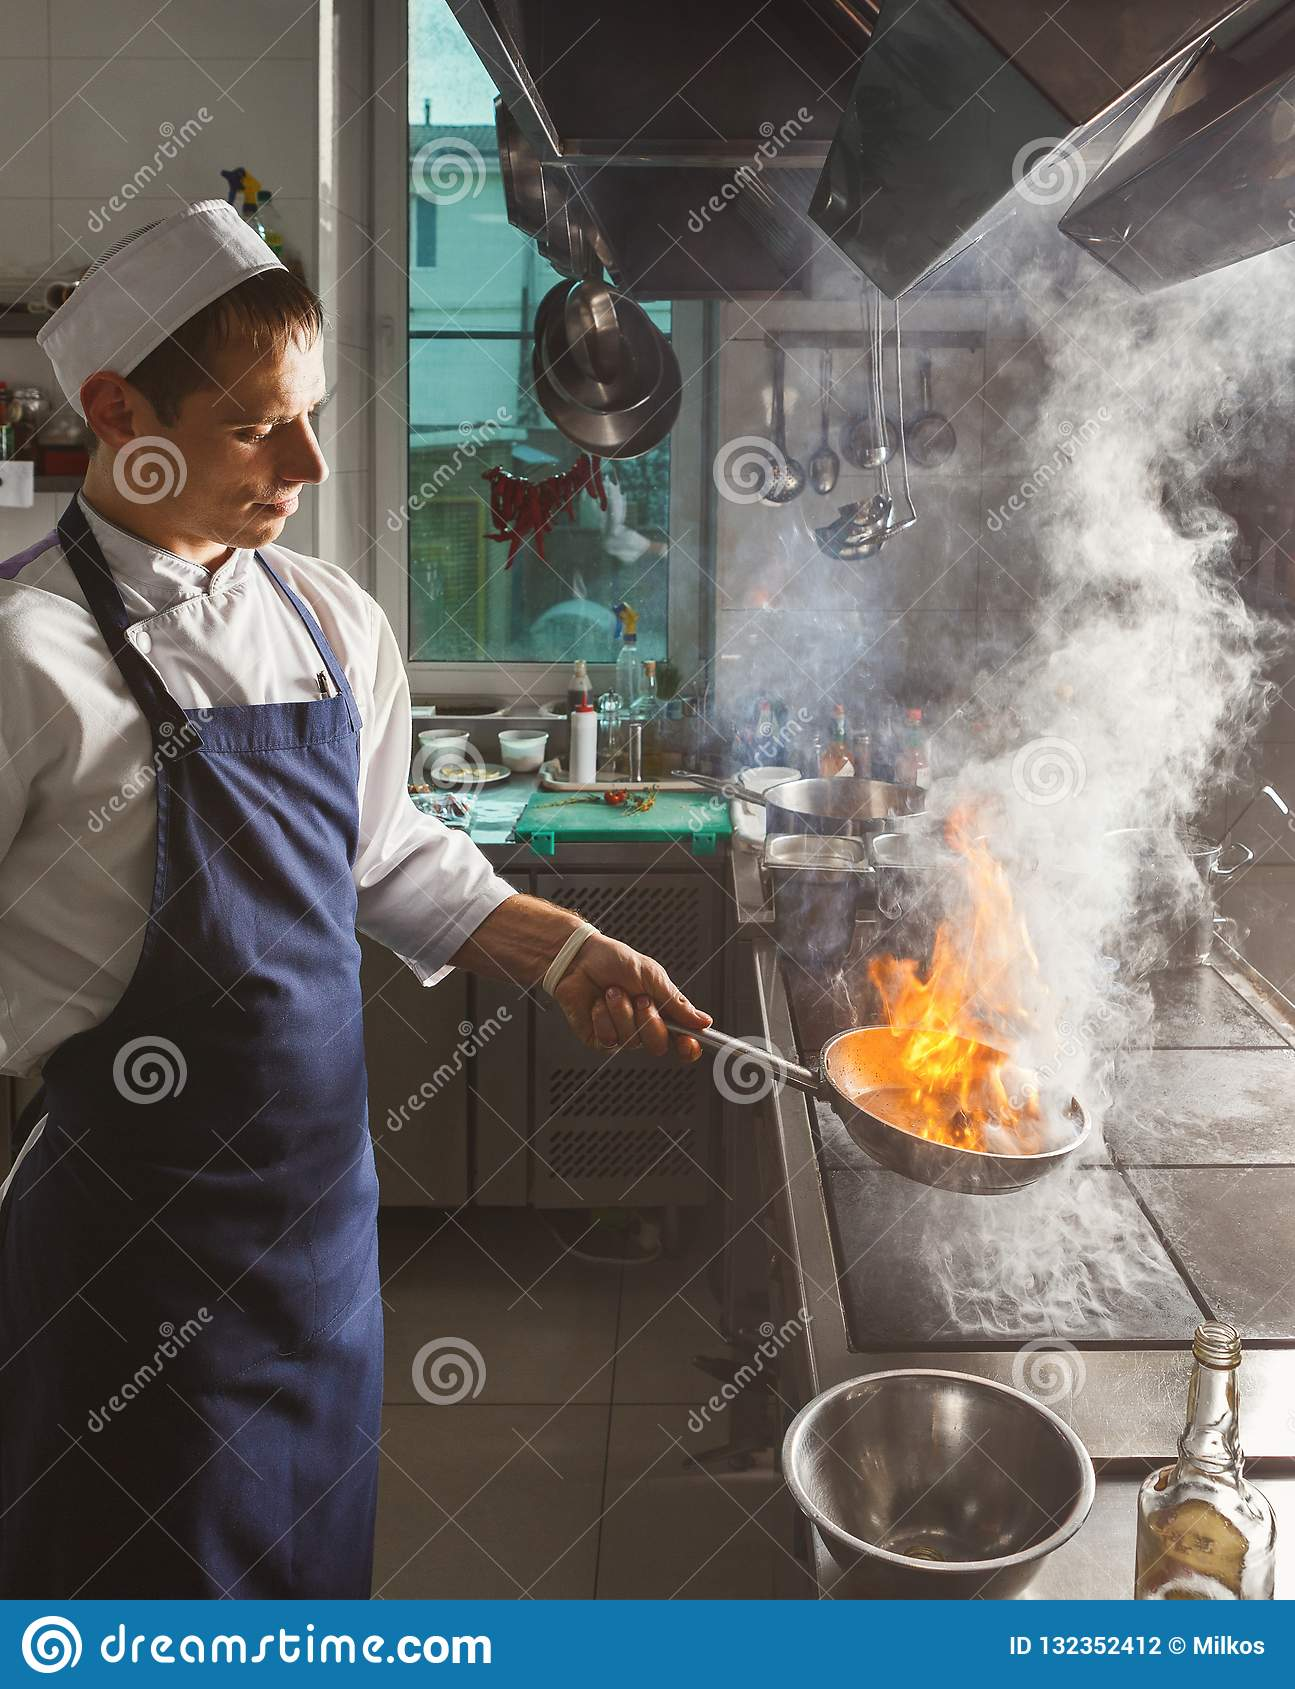 Chef Cooking Meat At Restaurant Or Hotel Kitchen Stock Photo Image Of Meal Apron 132352412